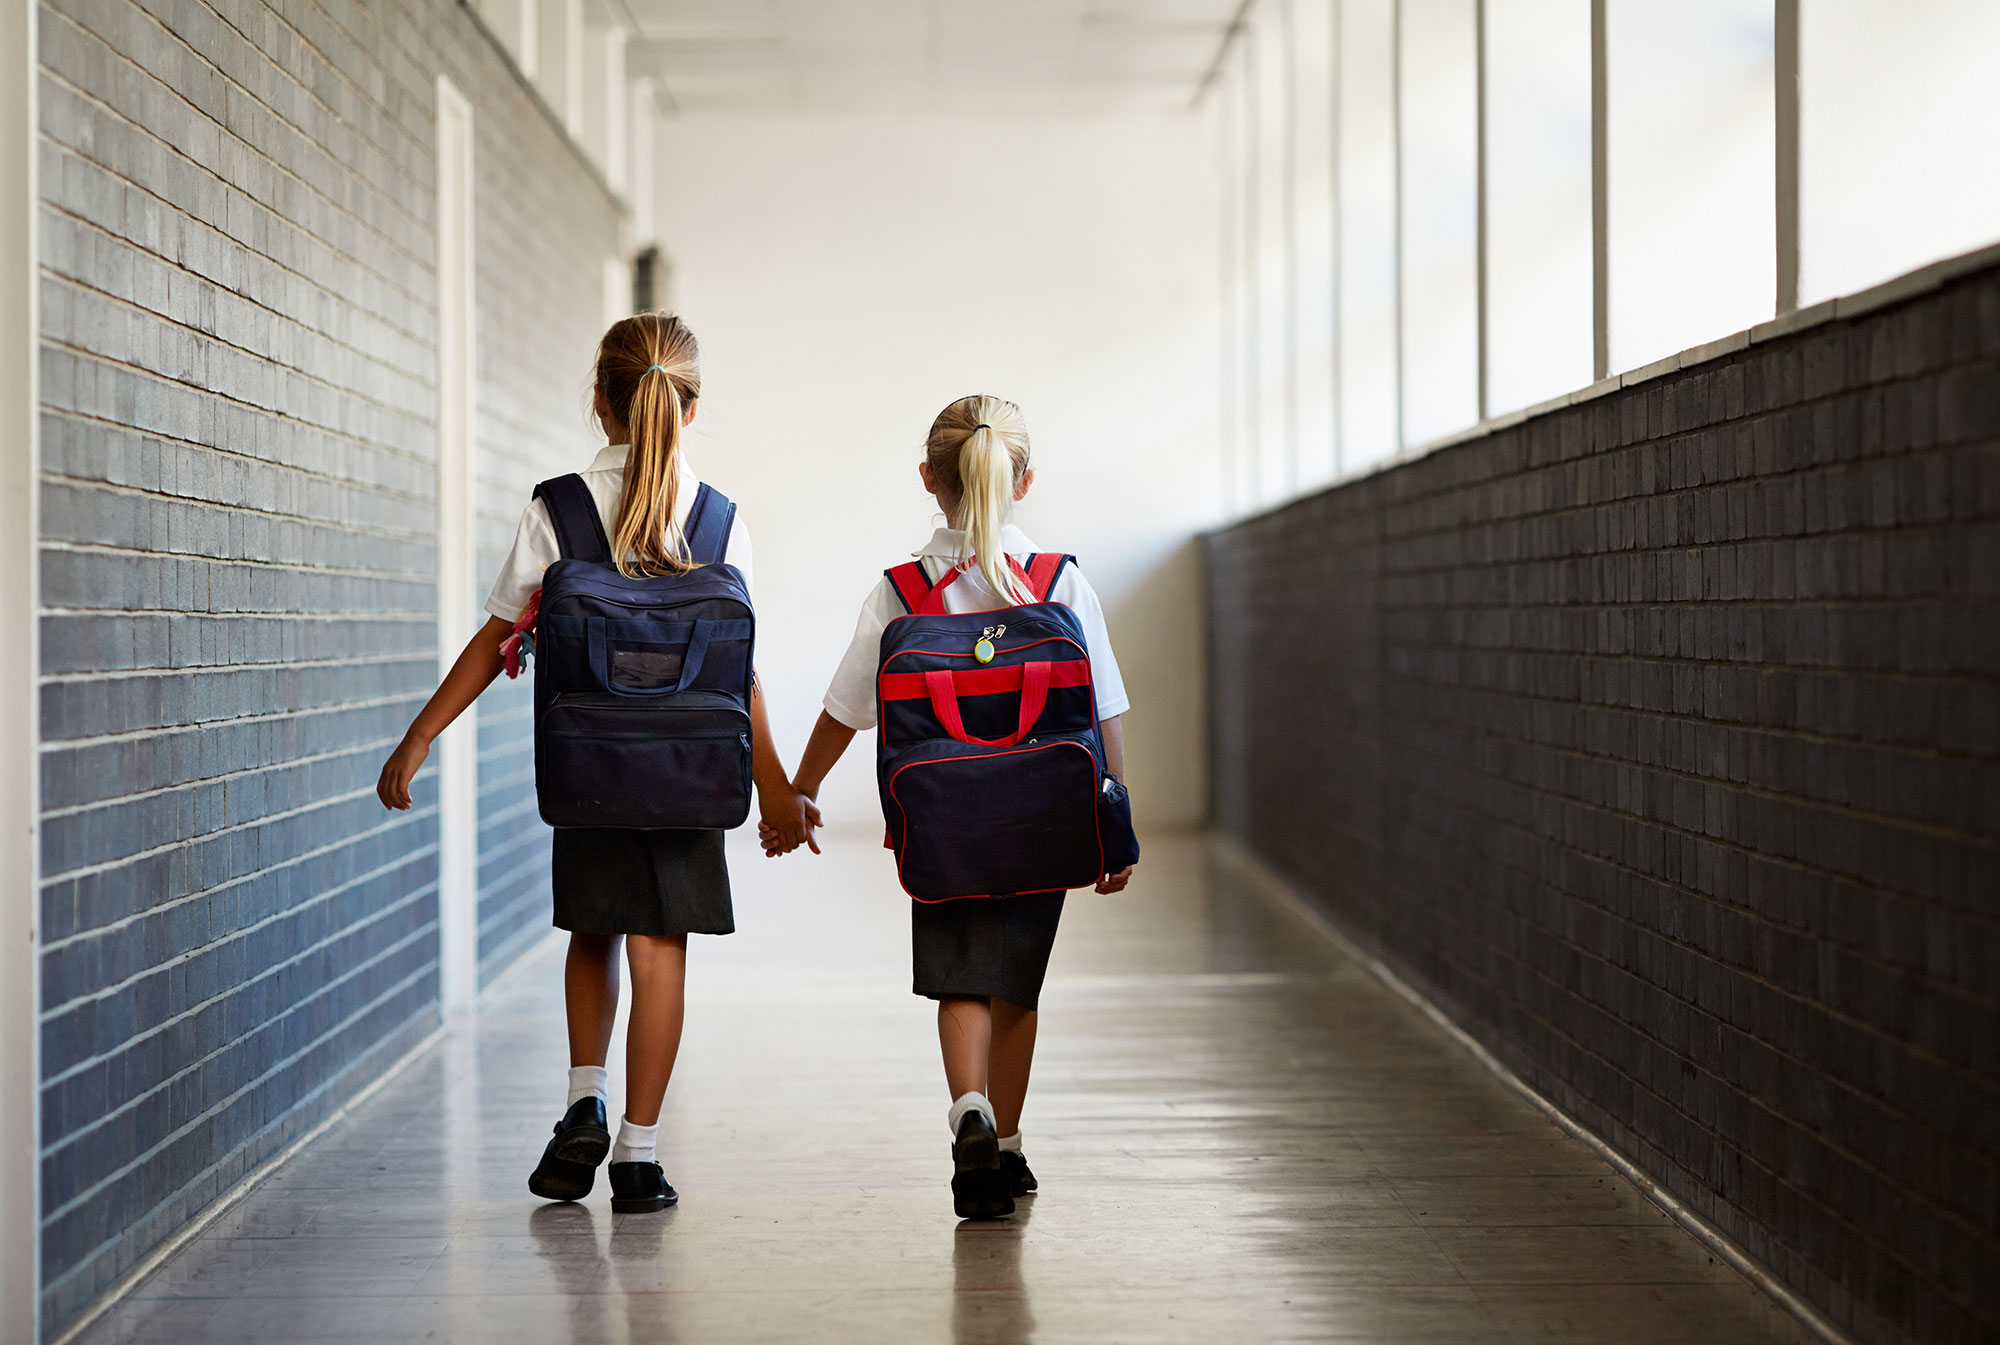 Kids Born in August (Who Aren't Held Back from Starting School) Don't Perform as Well: Study